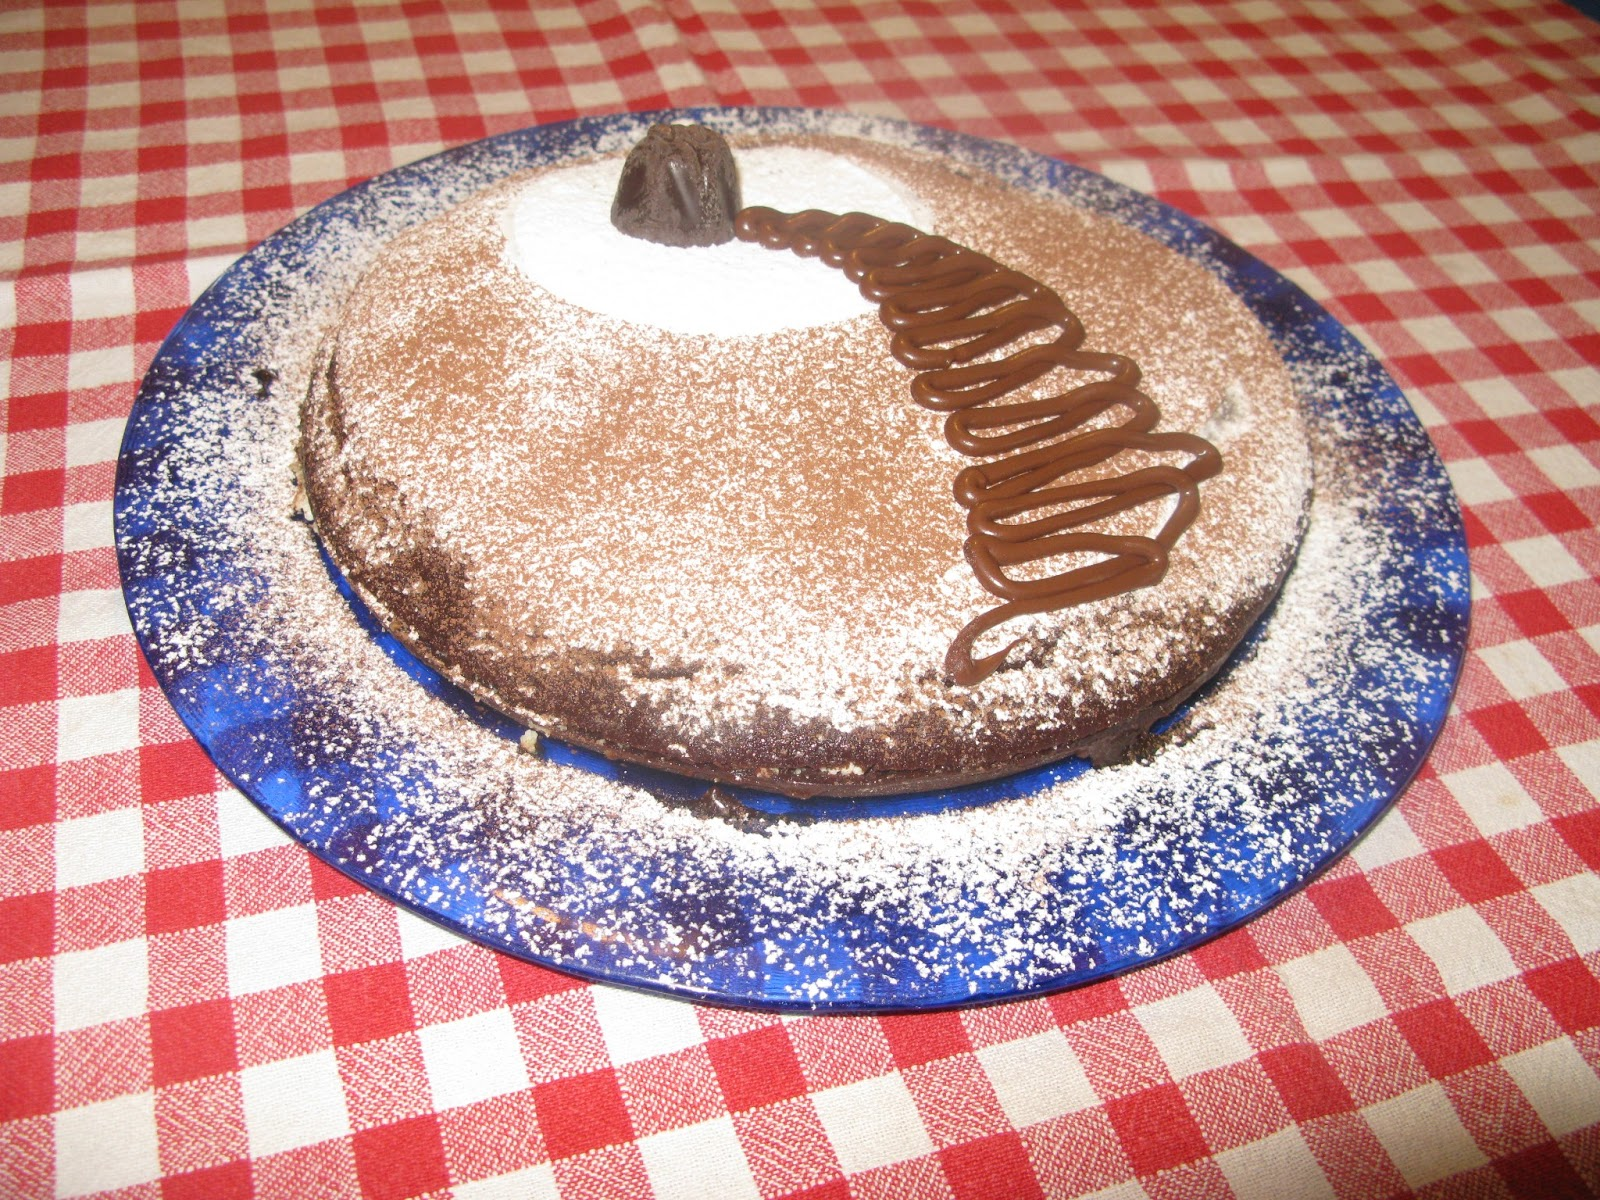 Torta facile al cacao decorata